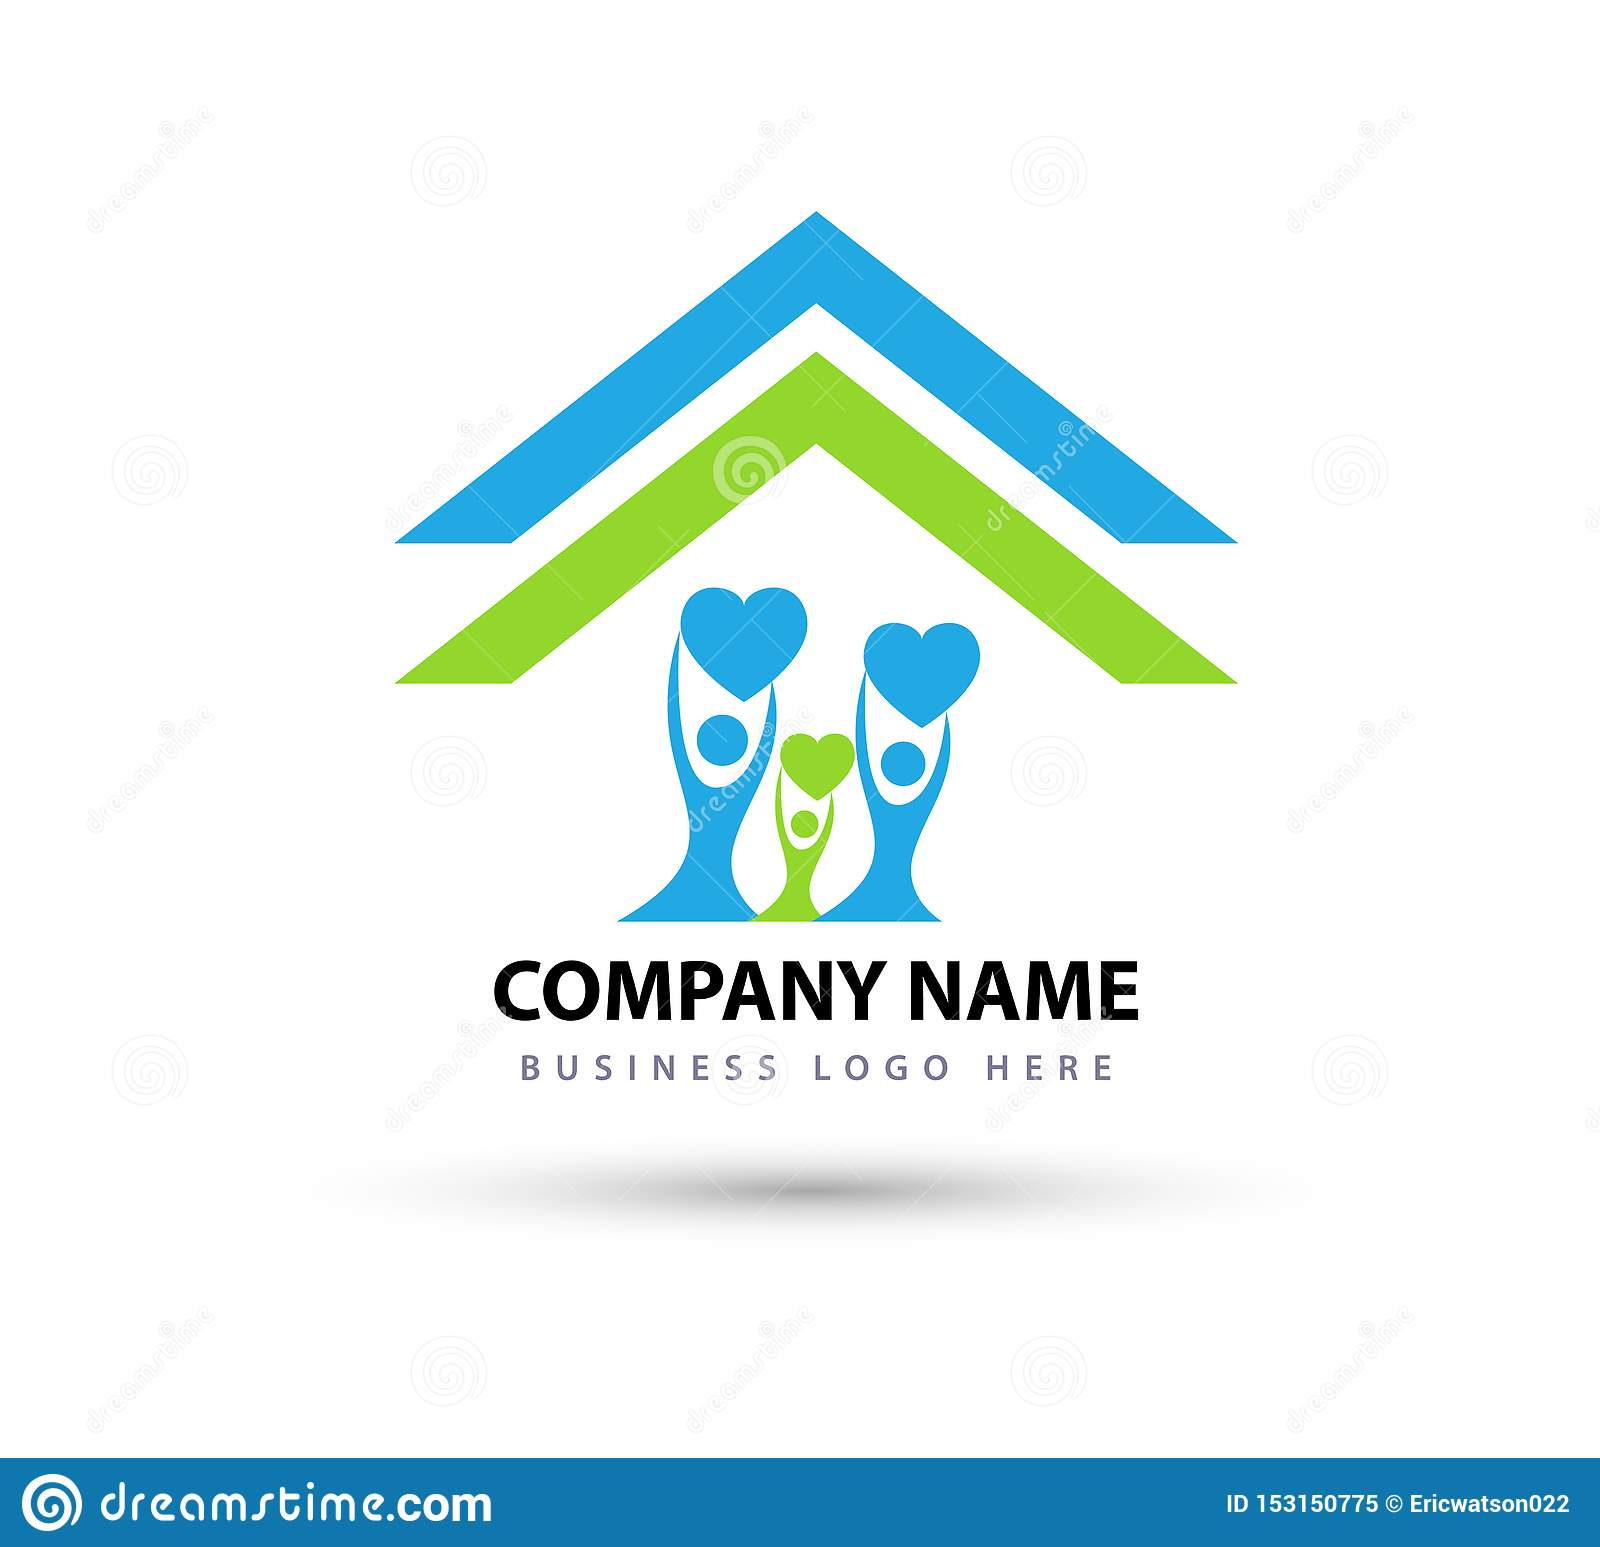 Happy Family in home house union logo lovely heart parent kids love parenting care symbol icon